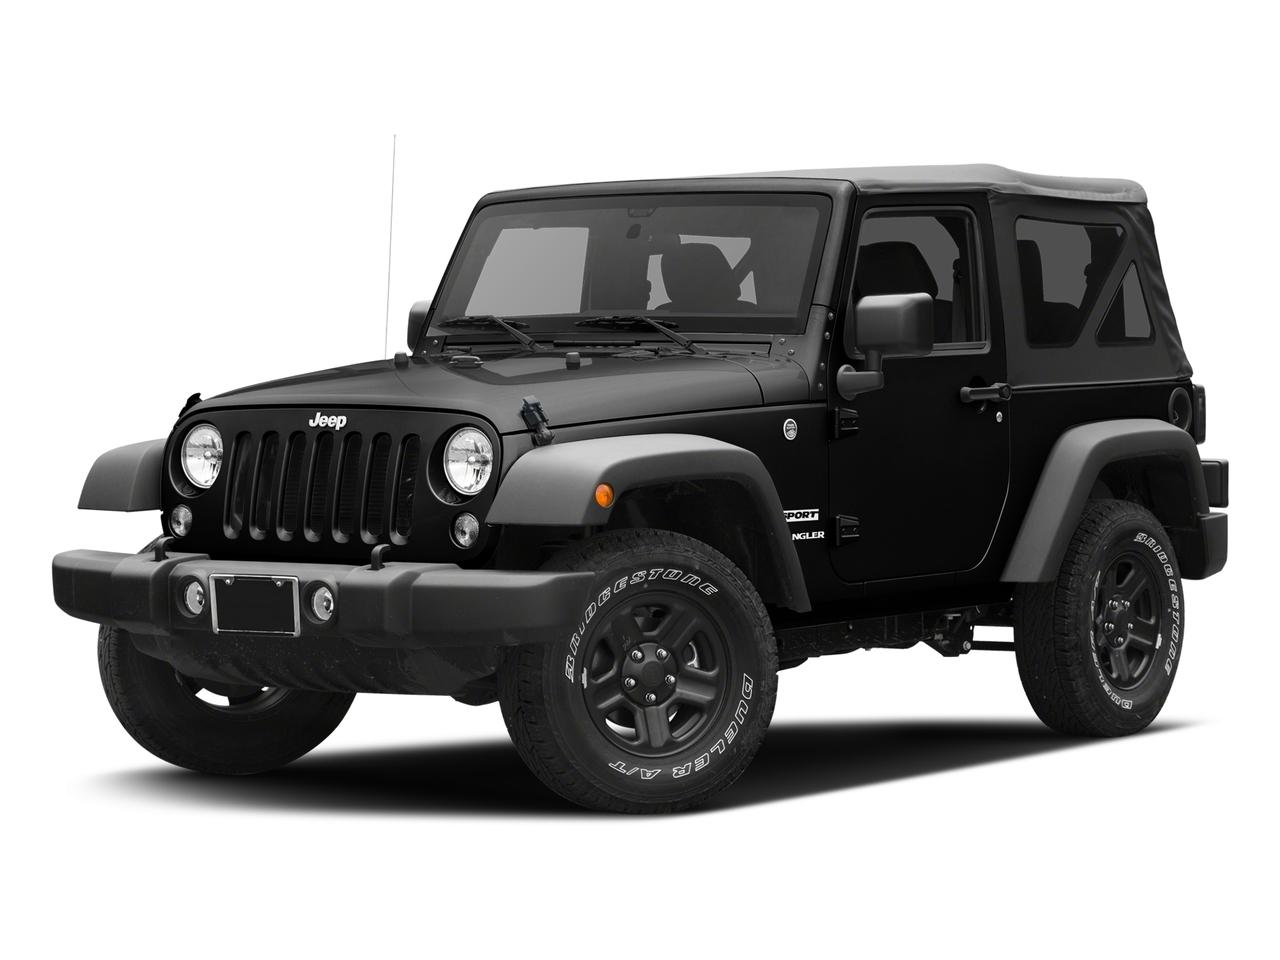 2016 Jeep Wrangler Vehicle Photo in Doylestown, PA 18976